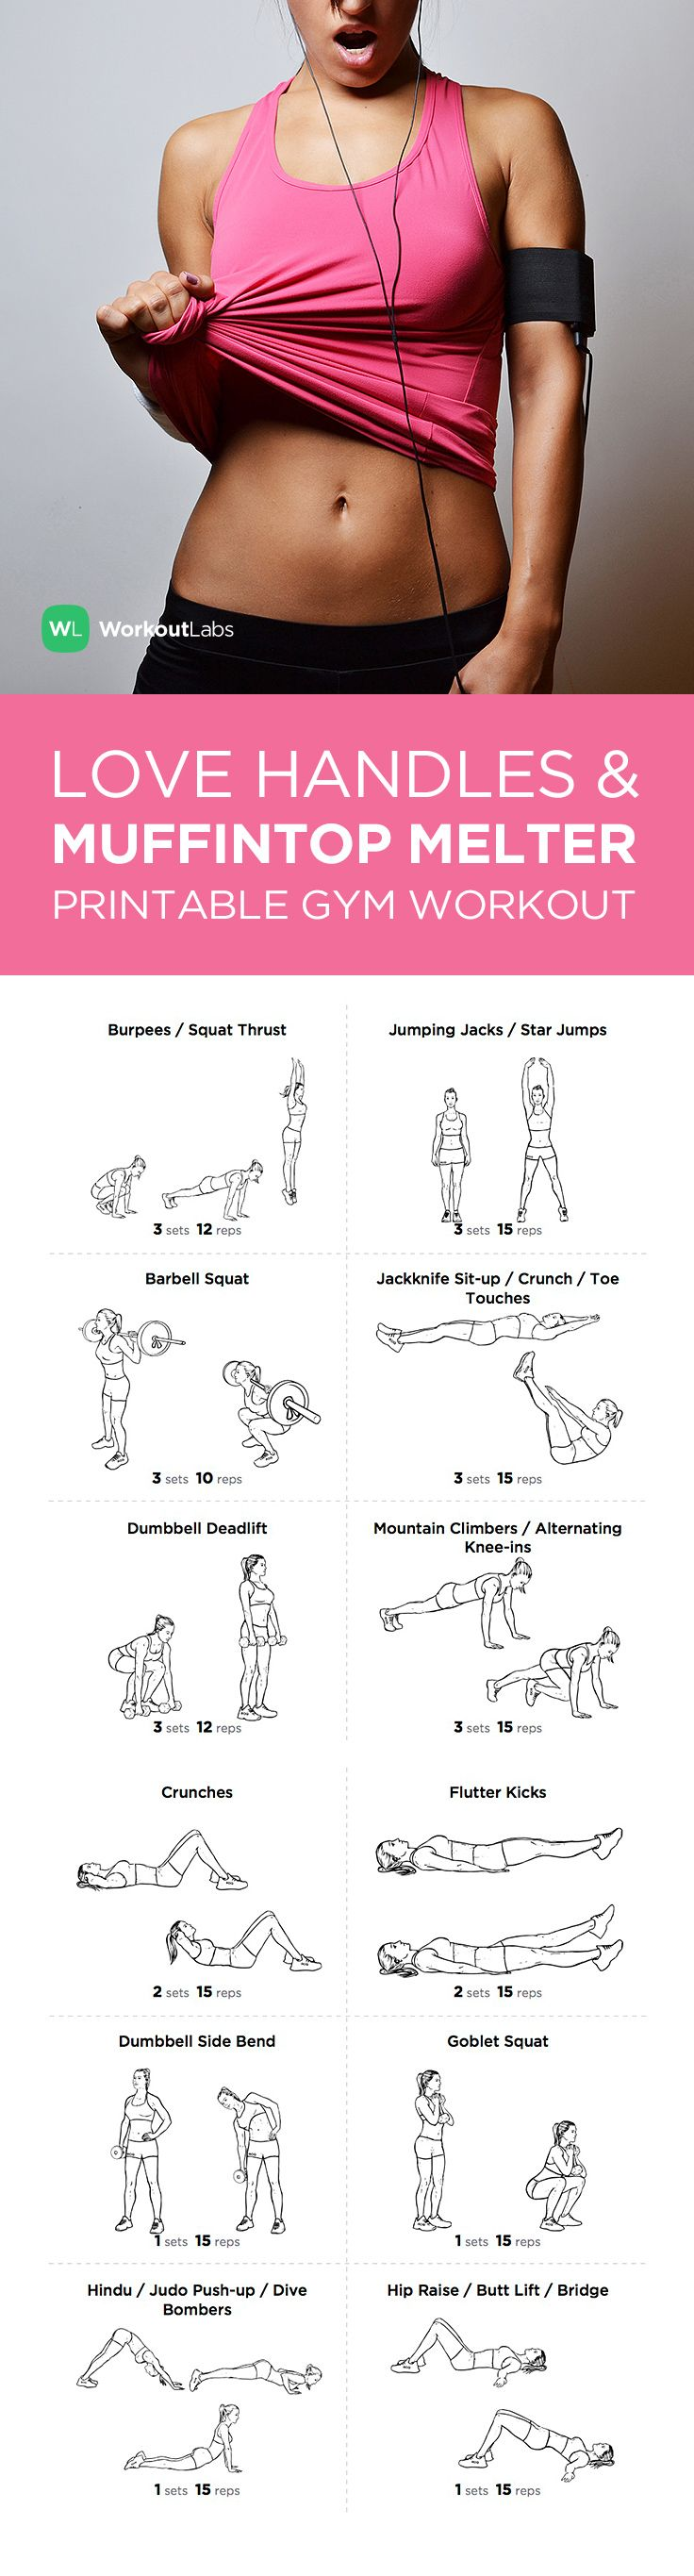 Pin By Savandary Vongsouvanh On Workout Pinterest Mh Summer Sixpack Challenge The Dumbbell Circuit Visit Http Workoutlabscom Plans Love Handles